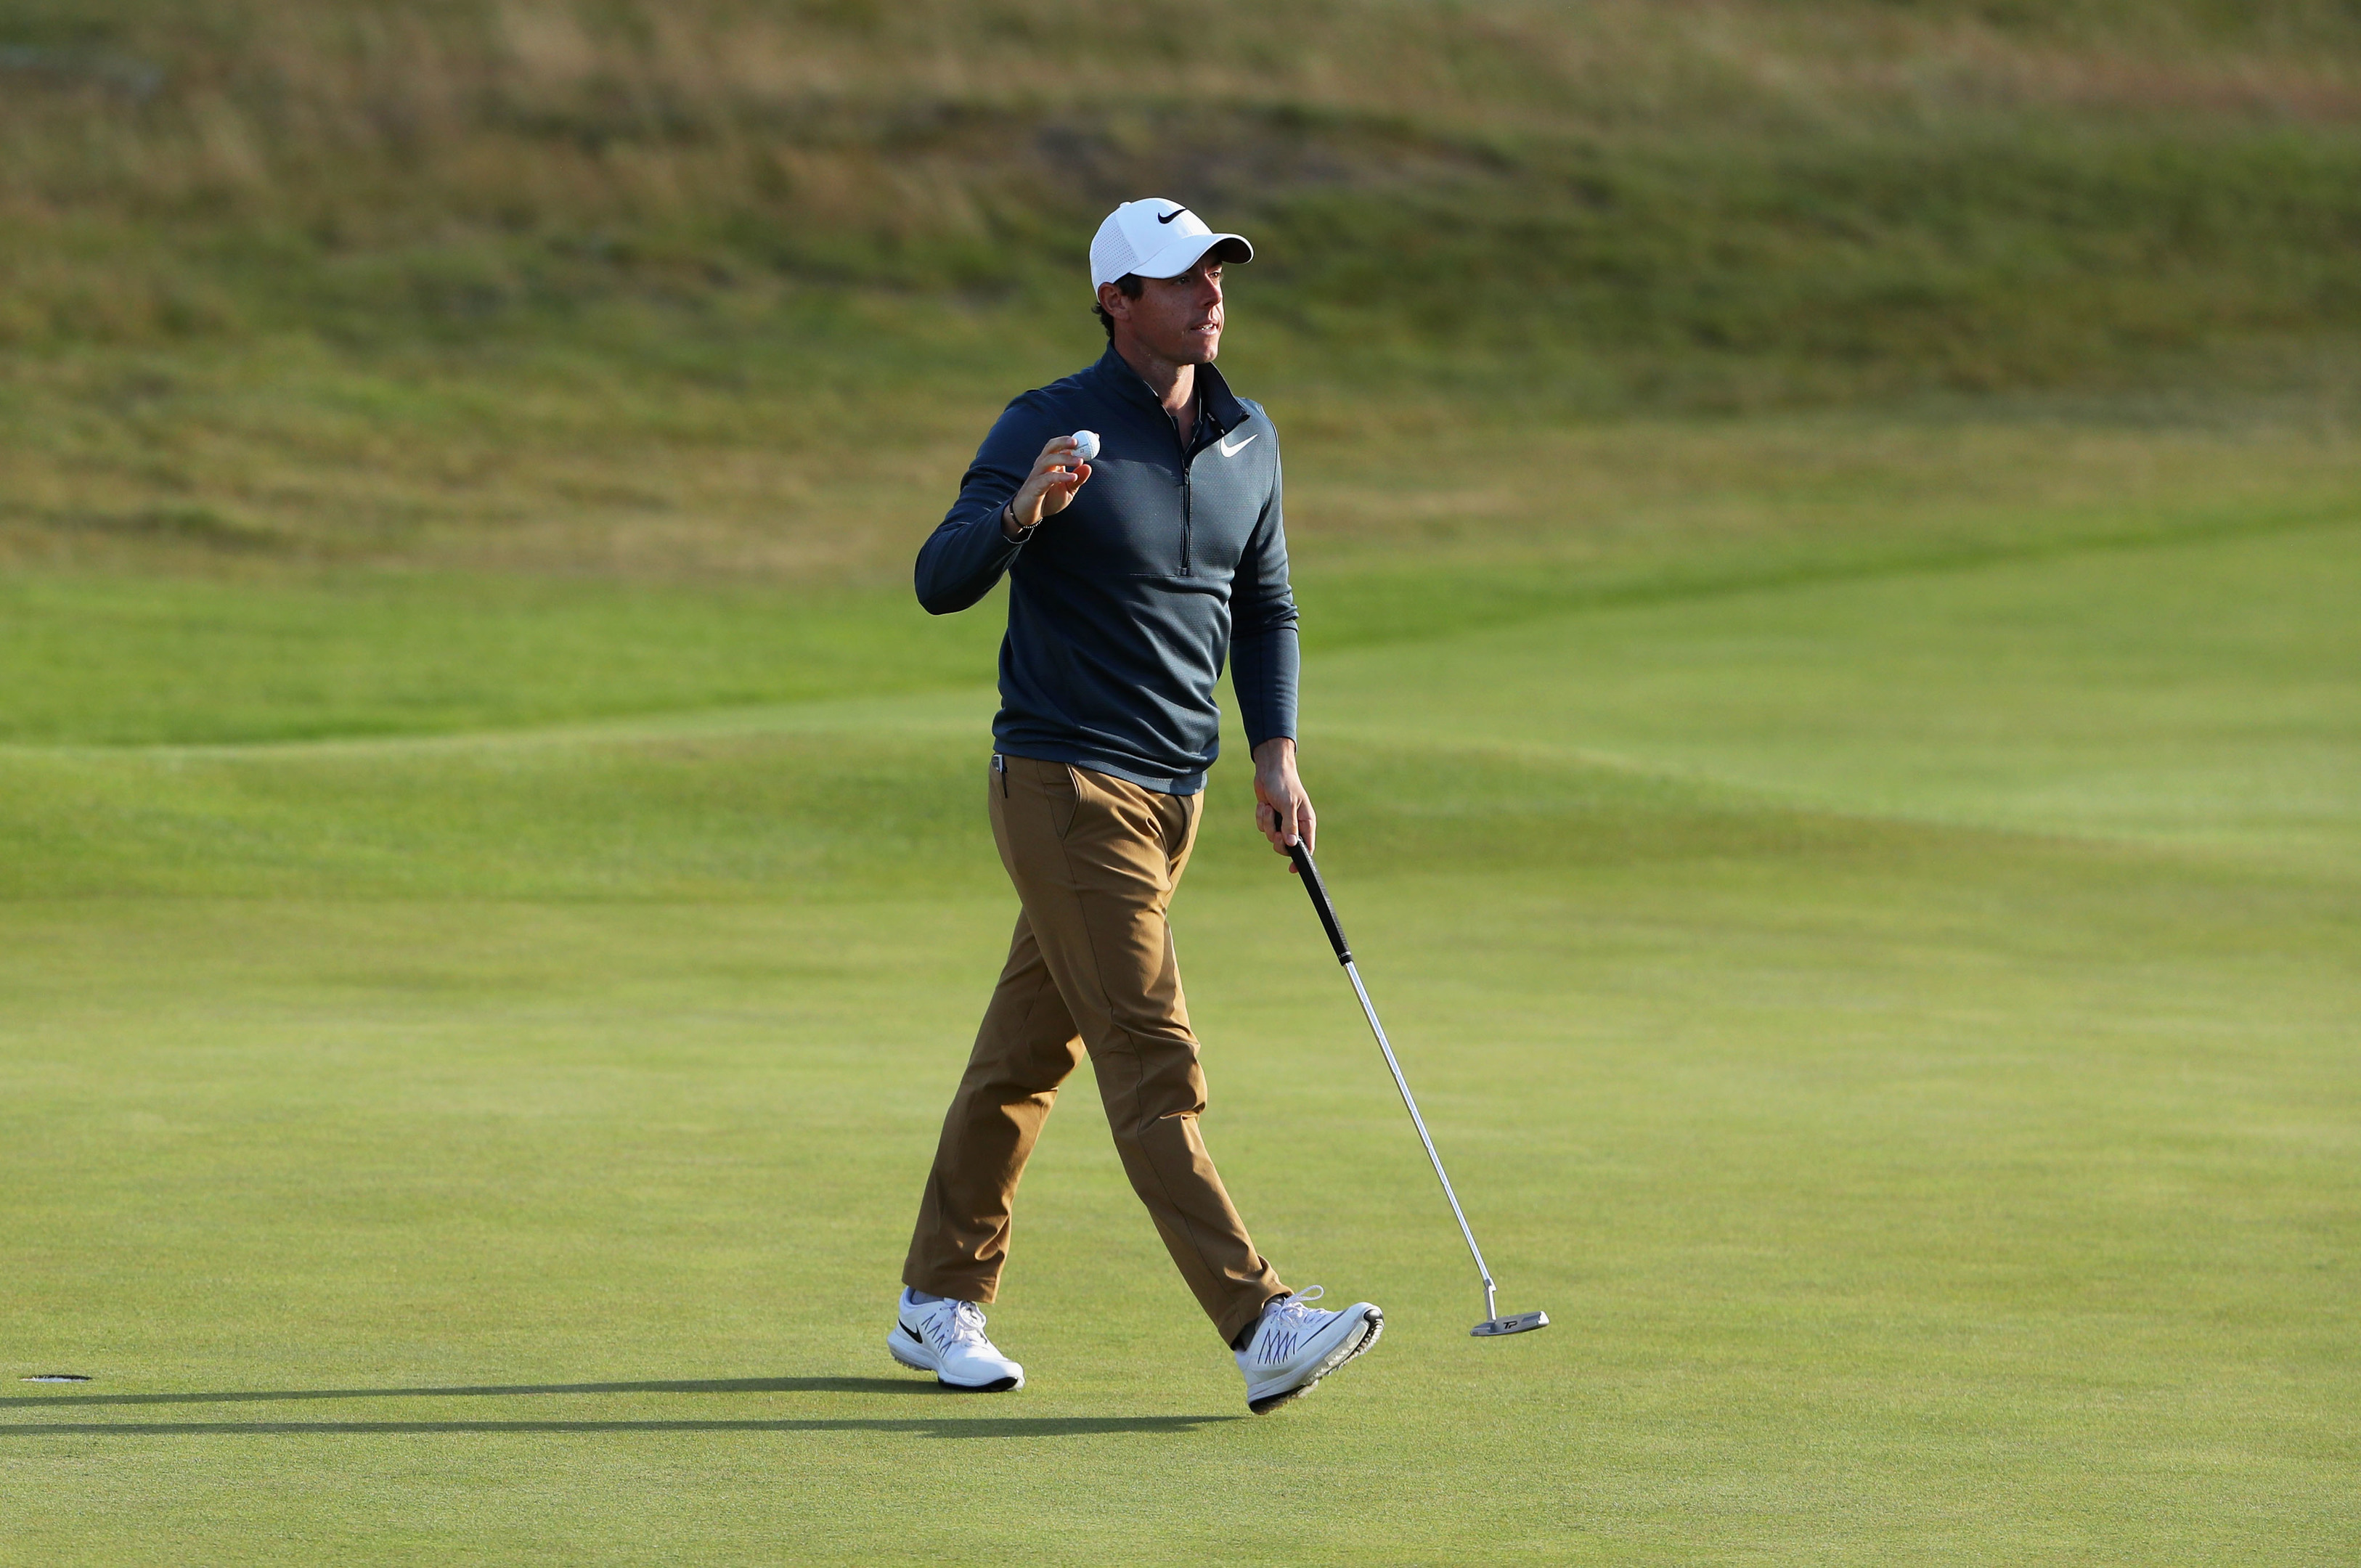 Rory McIlroy reacts to his birdie putt at the 18th at Royal Birkdale.